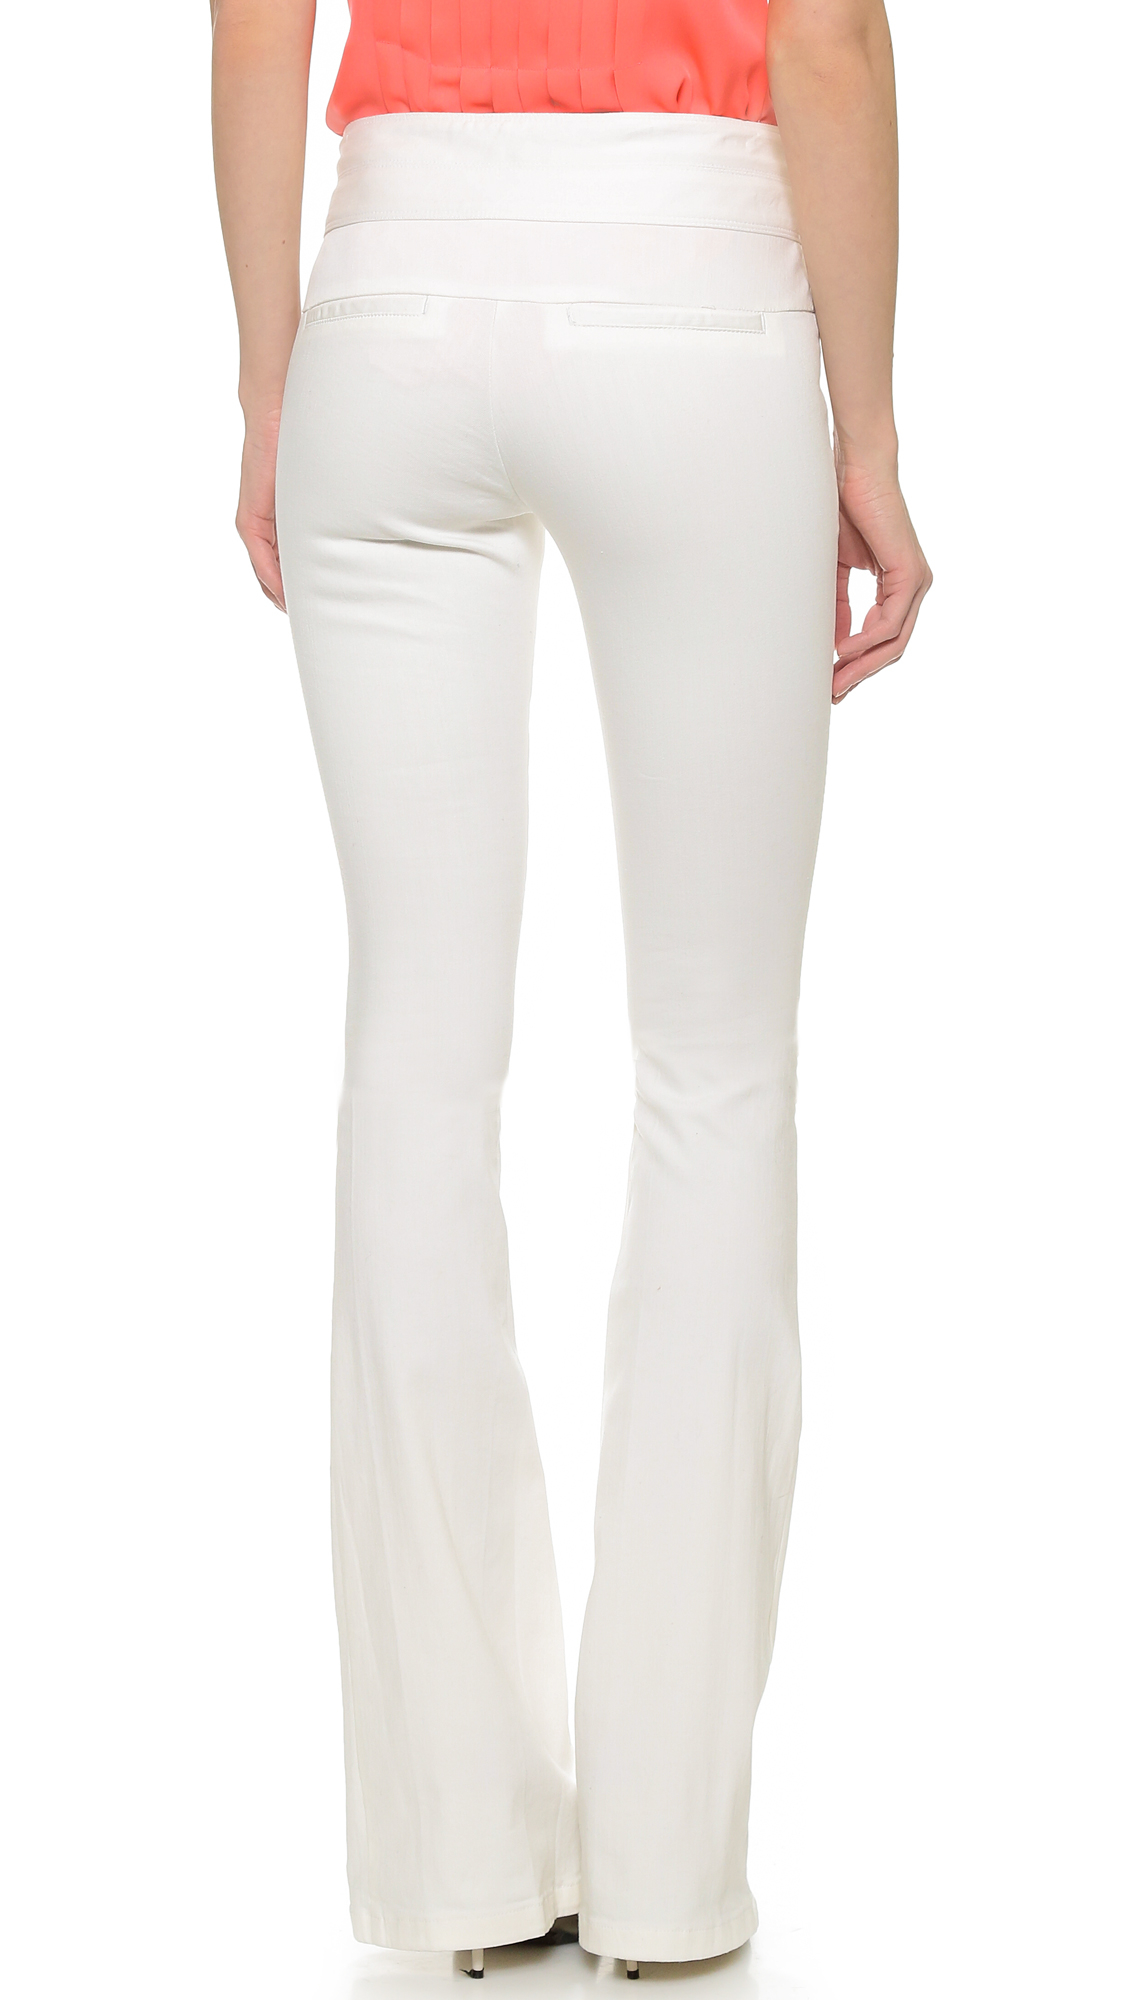 Stretch Jeans. Showing 2 of 2 results that match your query. Search Product Result. Product - Sweet Look Premium Edition Women's Jeans - Style Q Product Image. Product Title. Sweet Look Premium Edition Women's Jeans - Style Q Price $ List price $